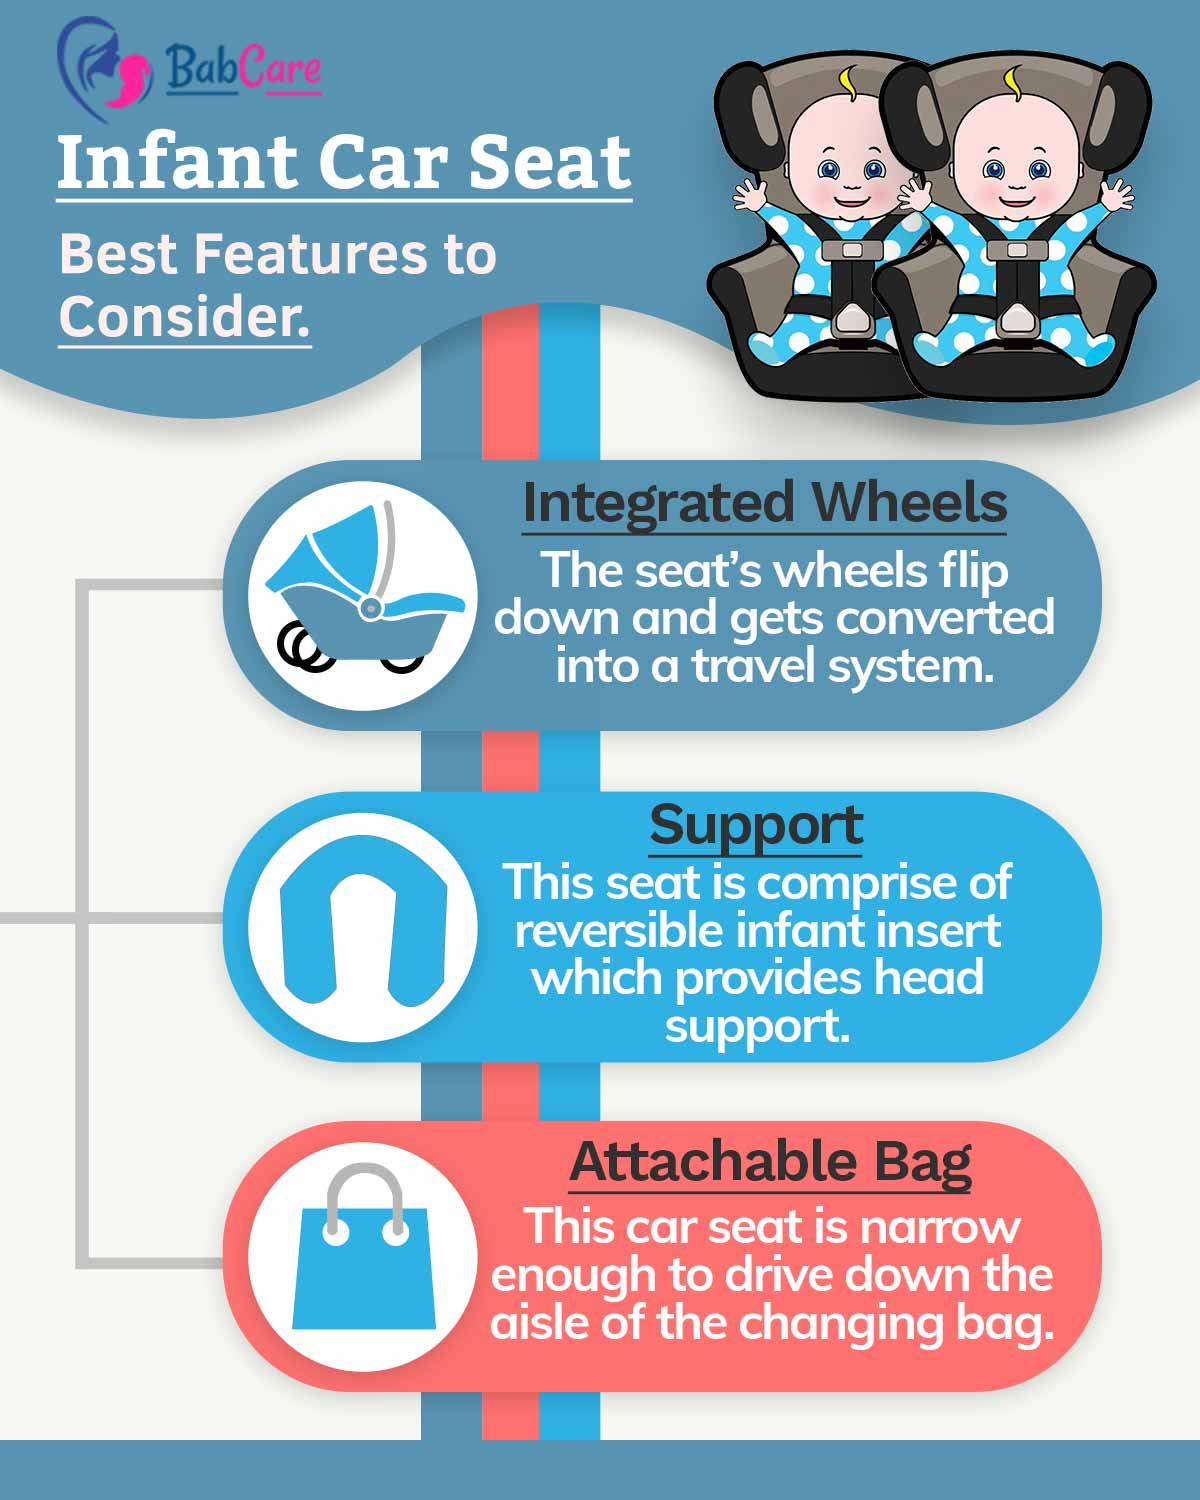 Best Infographic mico max 30 provided integrated wheels, head and neck support and attachable bag features